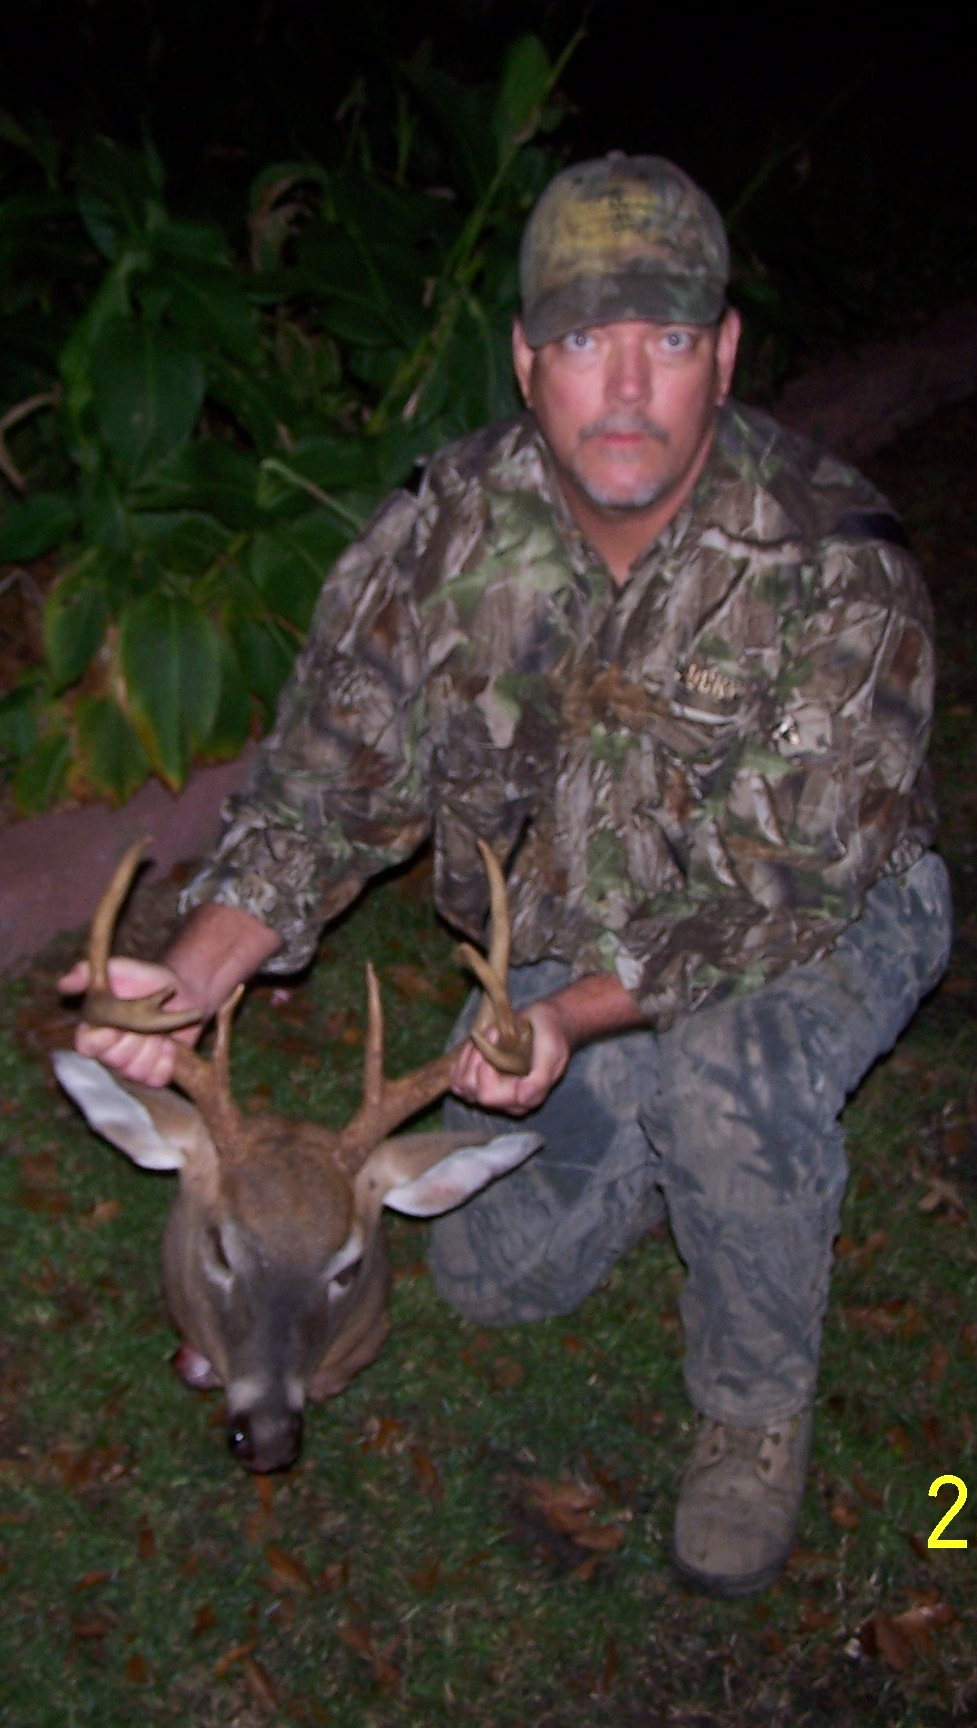 "Dave Hemmingsen - 10/10/08 - 14.5"" Spread - Weighed 215 lbs"